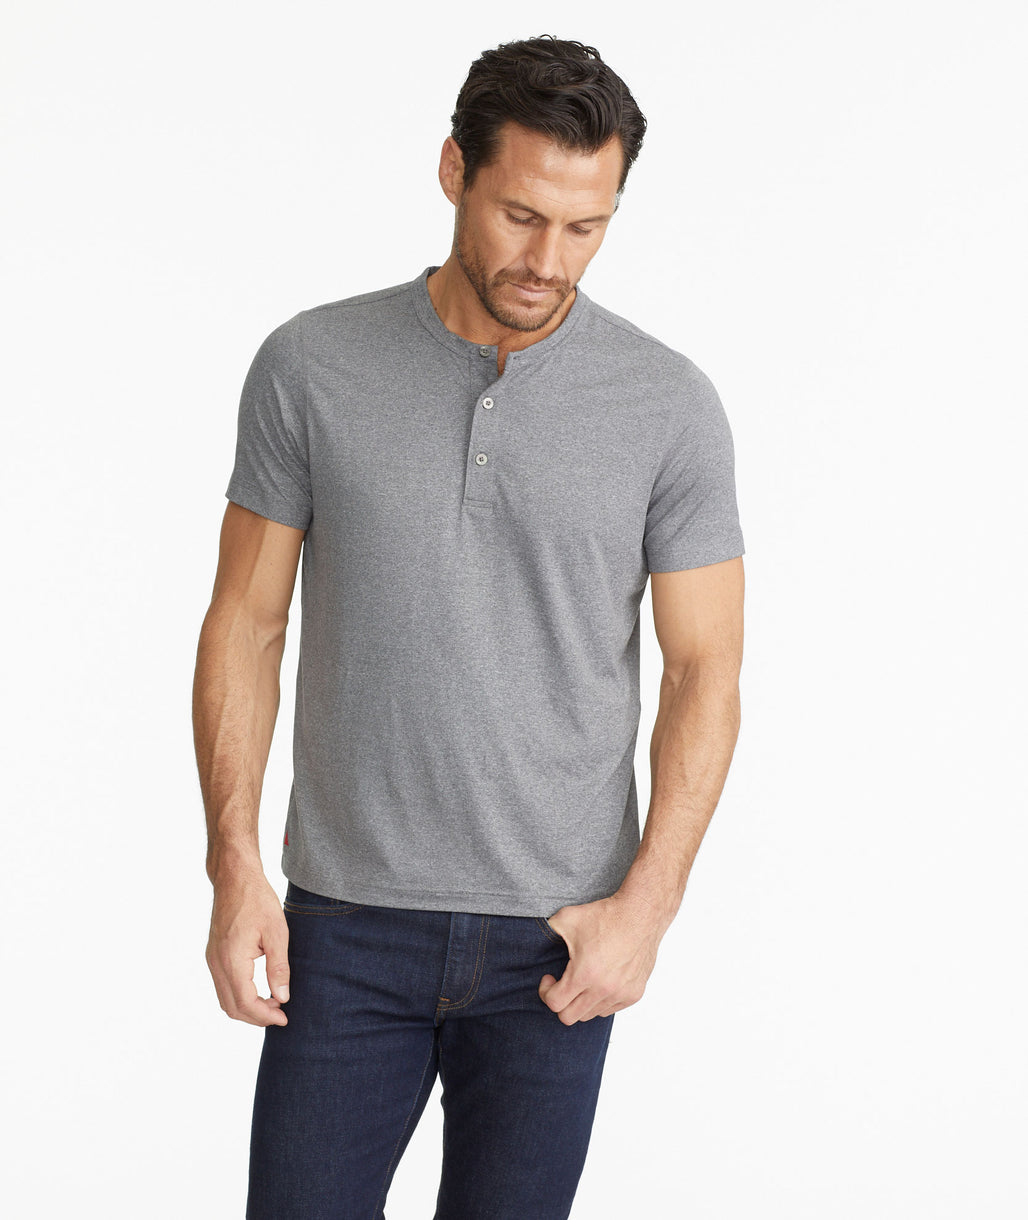 Model wearing a  Short-Sleeve Performance Henley